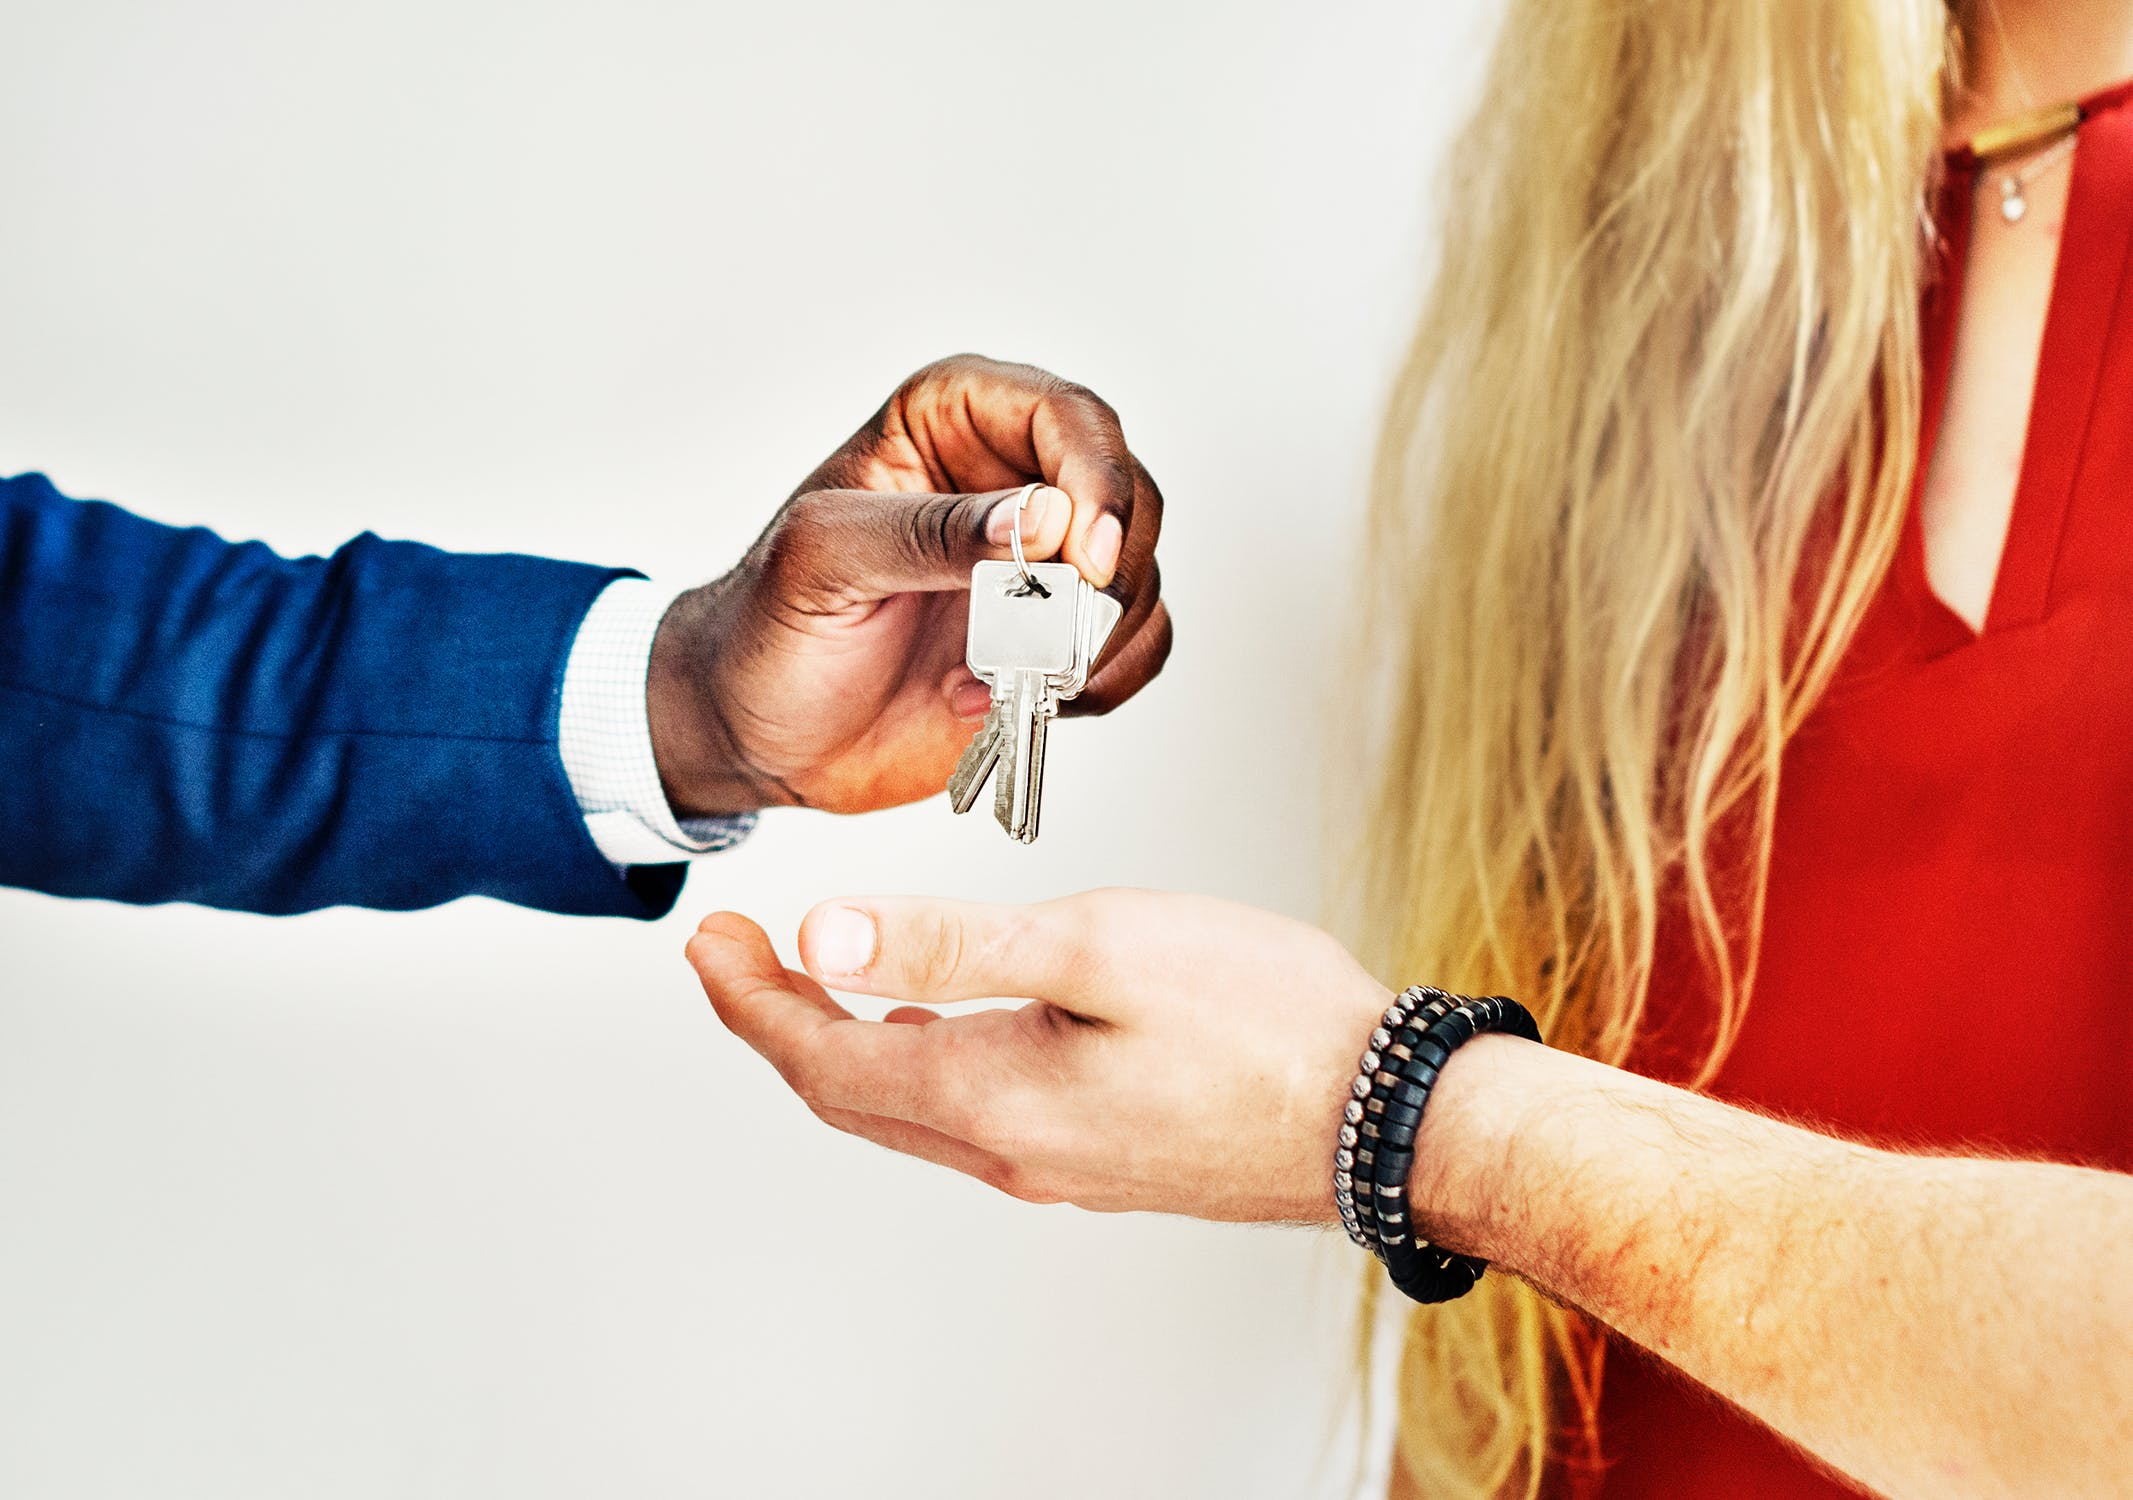 Property Demand to Grow in South Africa